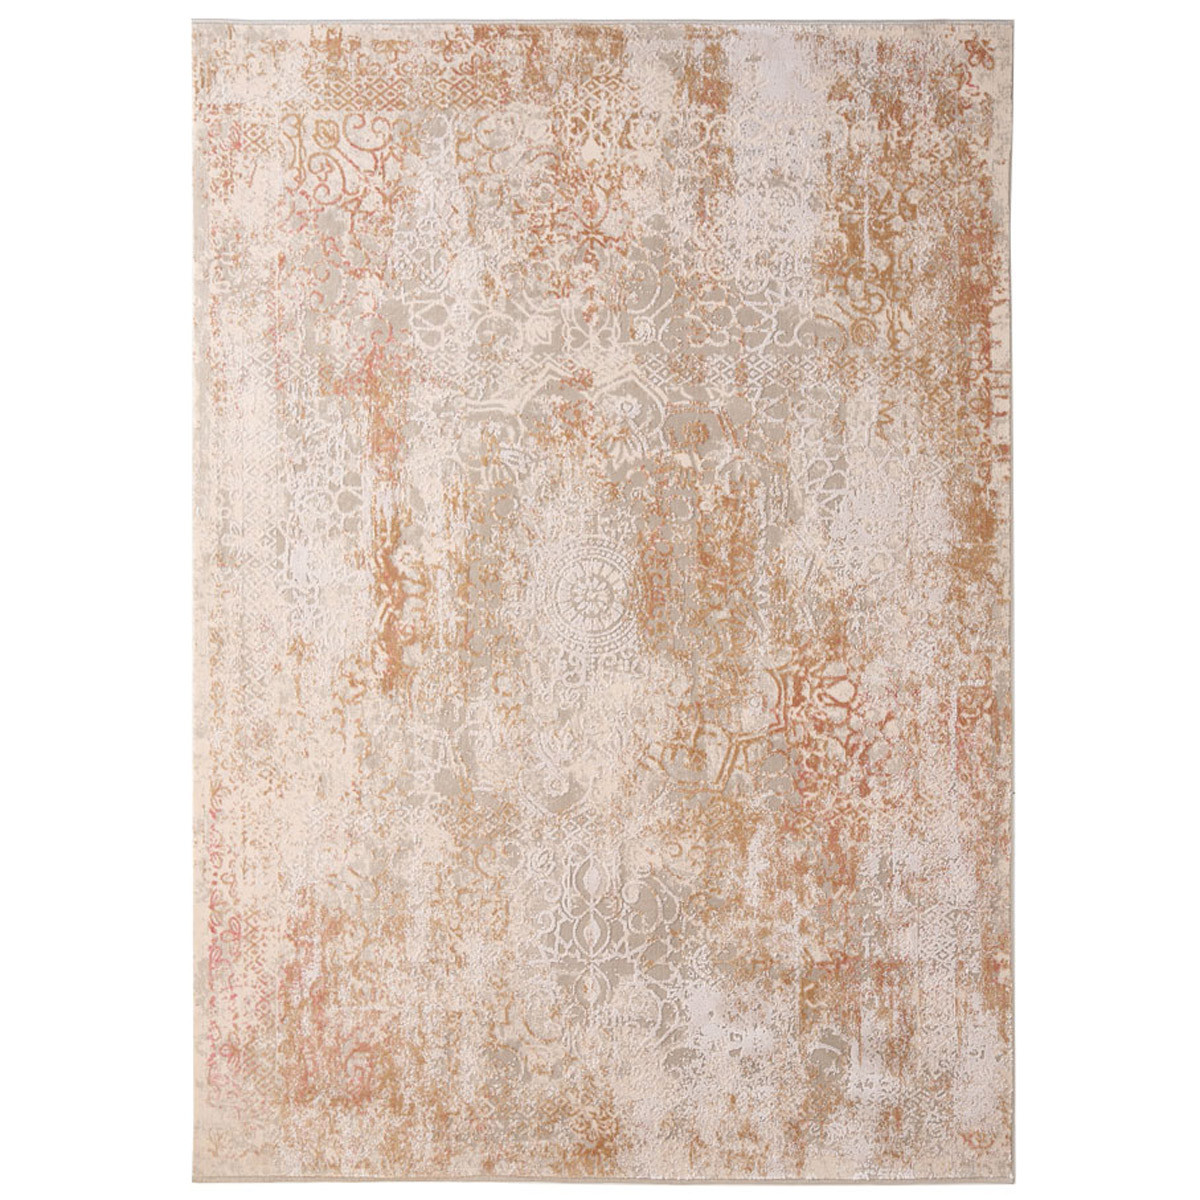 Χαλί (160×230) Royal Carpets Vogue 226 Beige